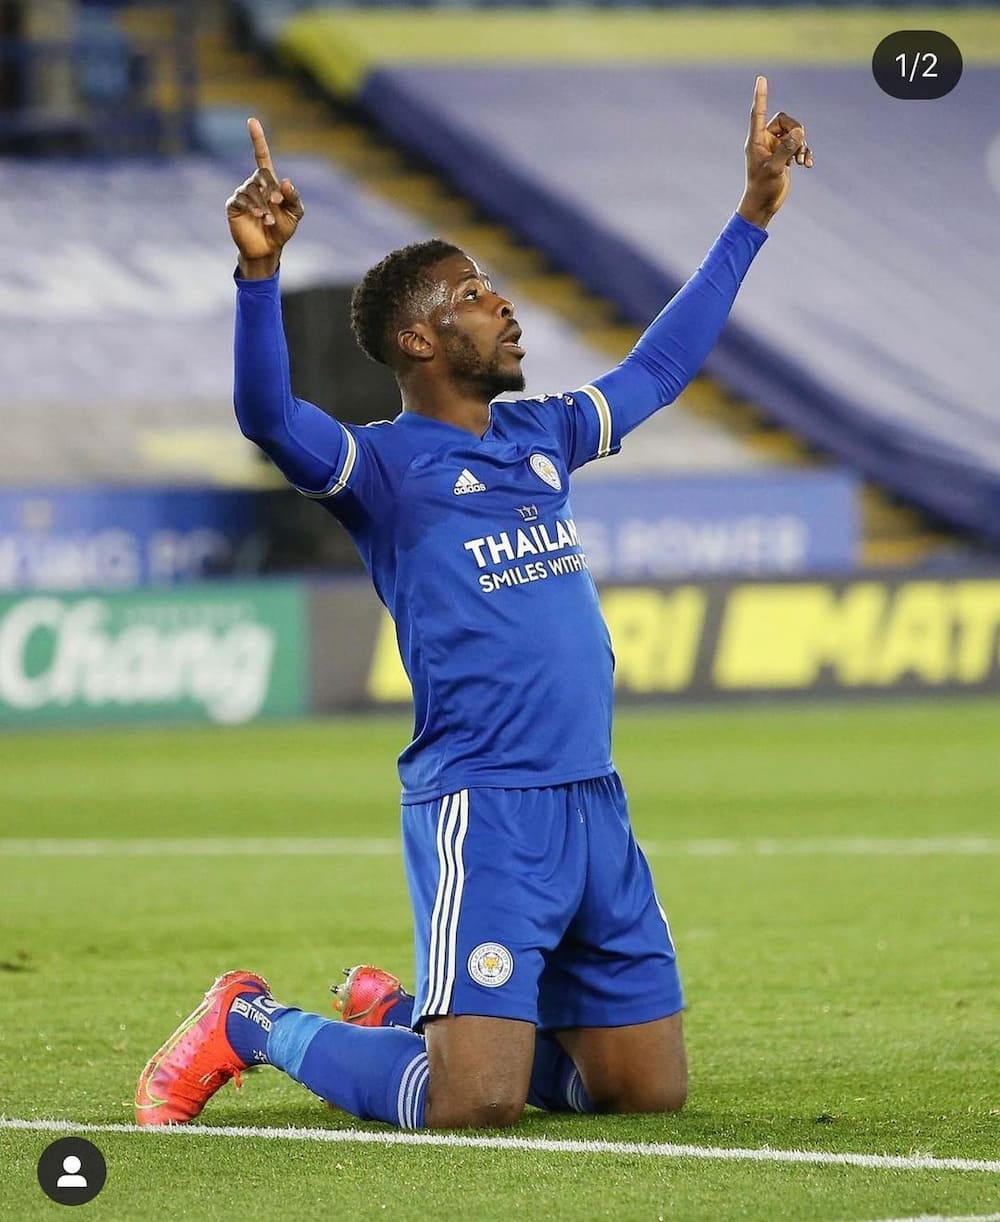 Iheanacho Replaces Kane As Most Resurgent Player In Premier League